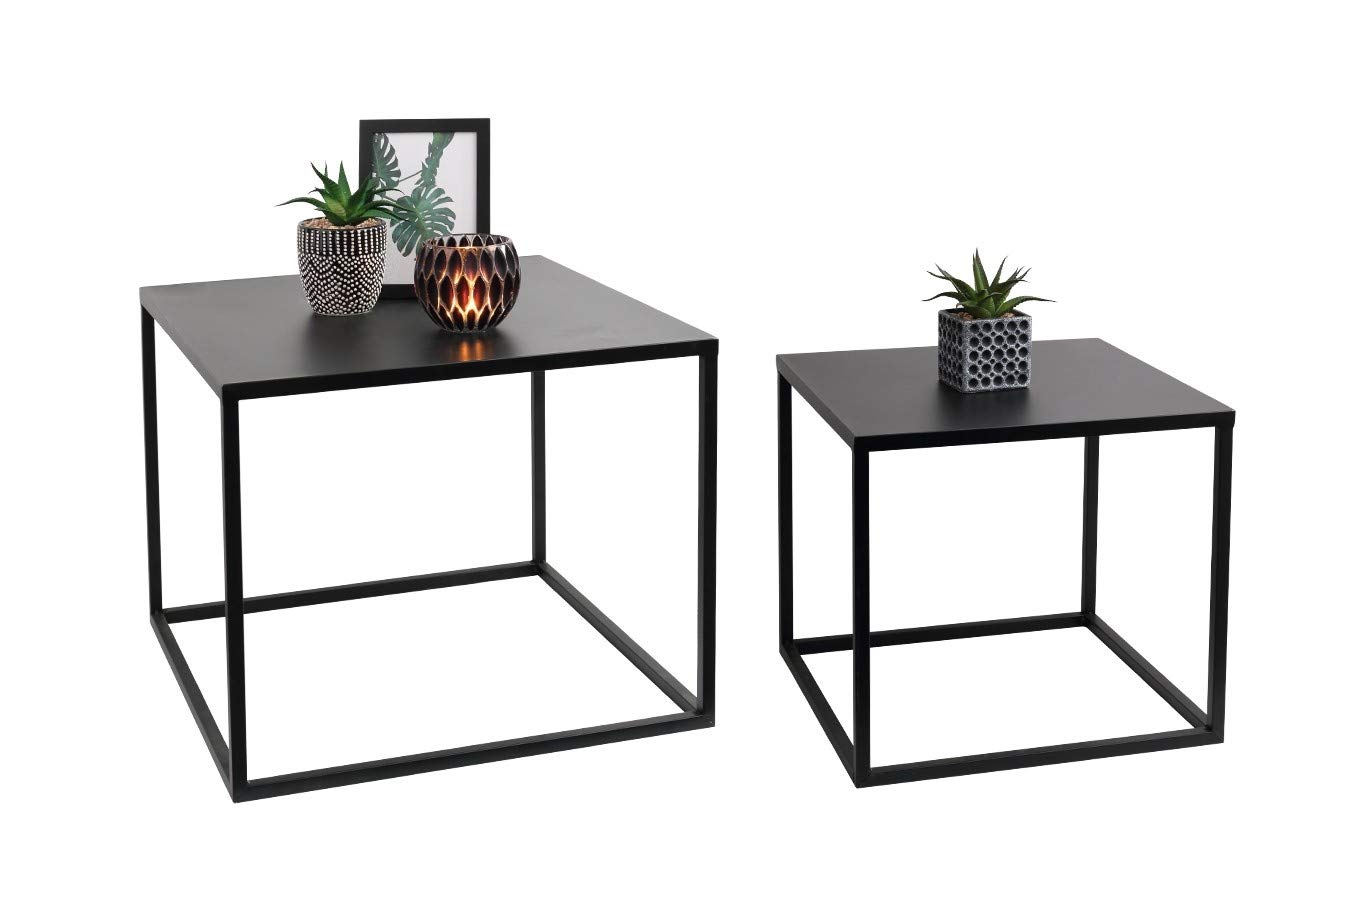 Lifa Living Nest Of 2 Tables Cube Square Coffee Tables For Small Spaces Modern Side Tables Black Metal End Tables For Living Room Bedroom Patio Office Buy Online In Aruba At Aruba Desertcart Com